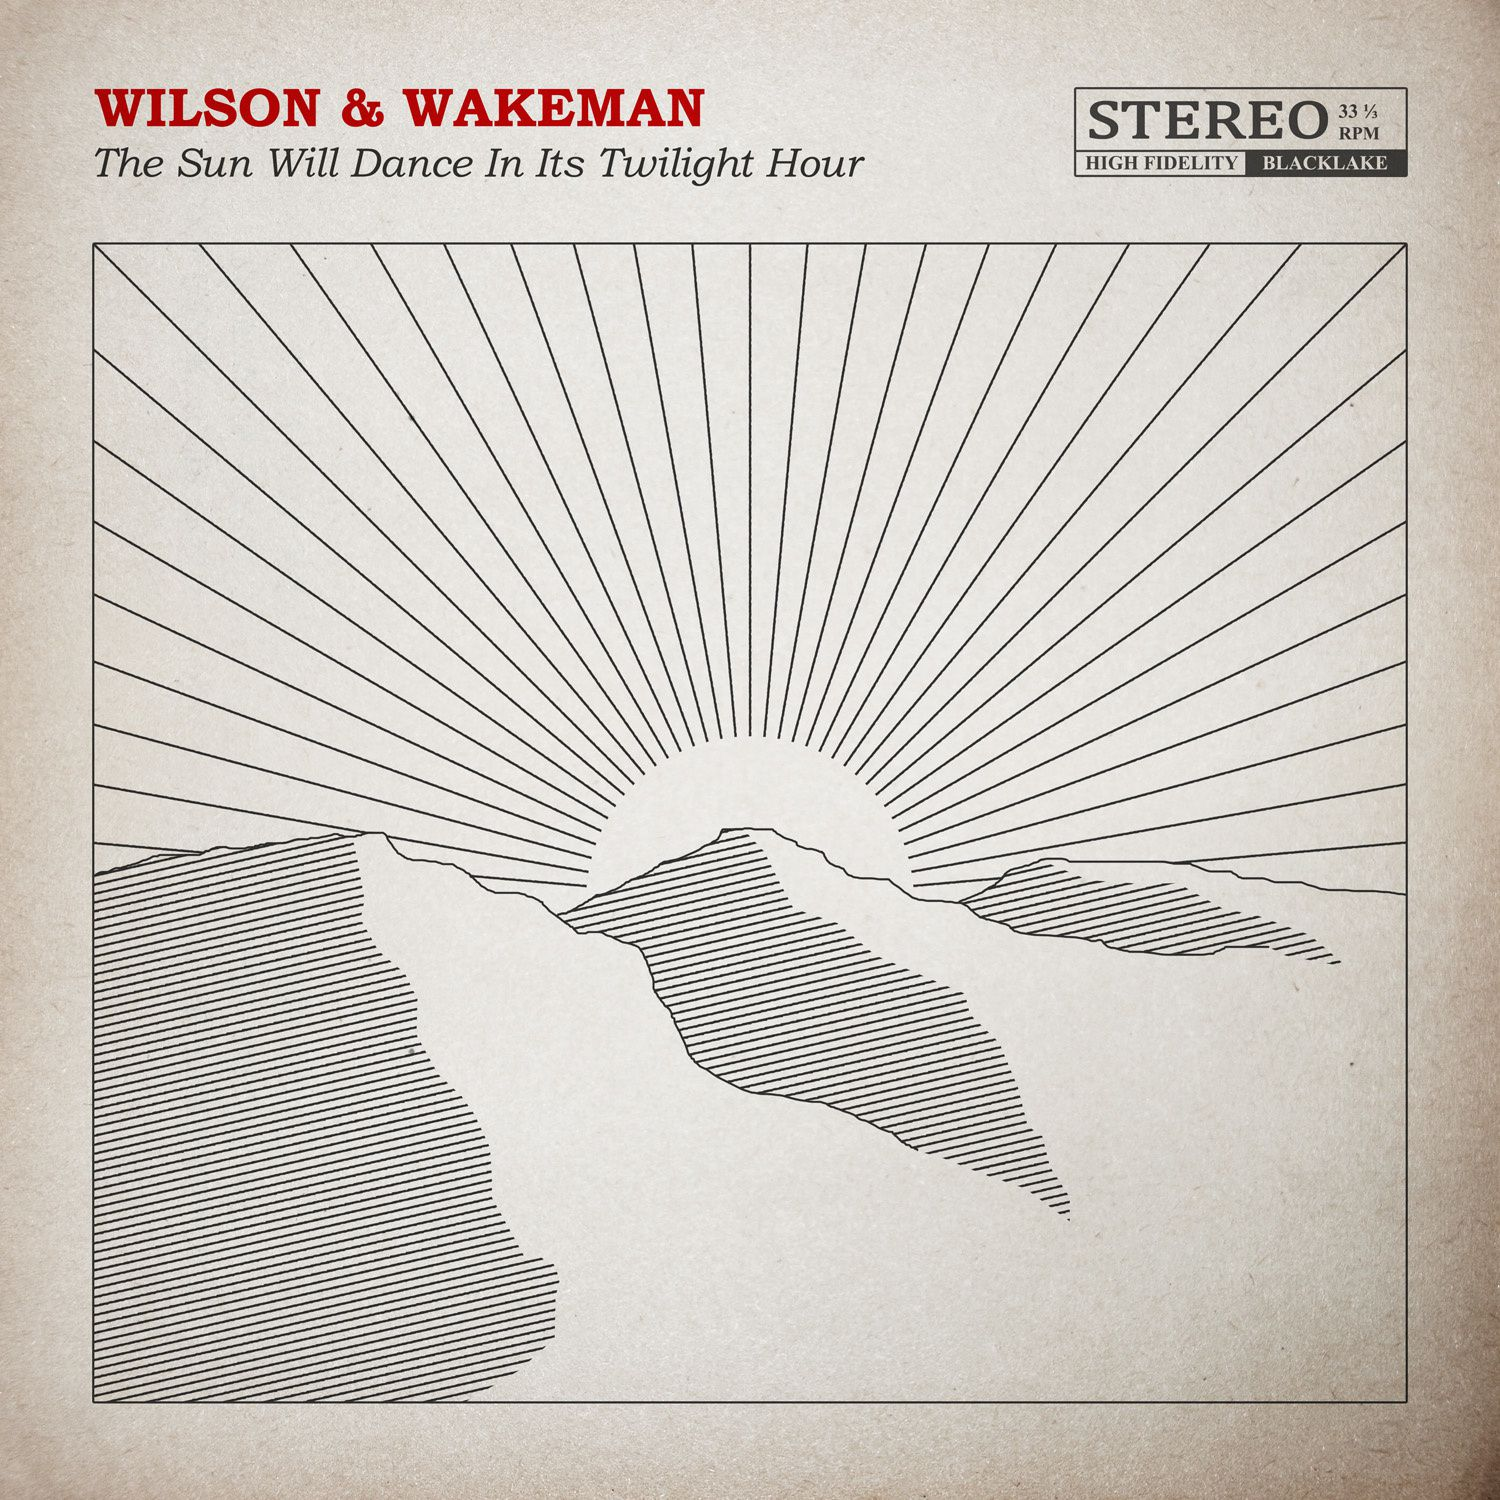 """CD review WILSON & WAKEMAN """"The Sun Will Dance in its Twilight Hour"""""""